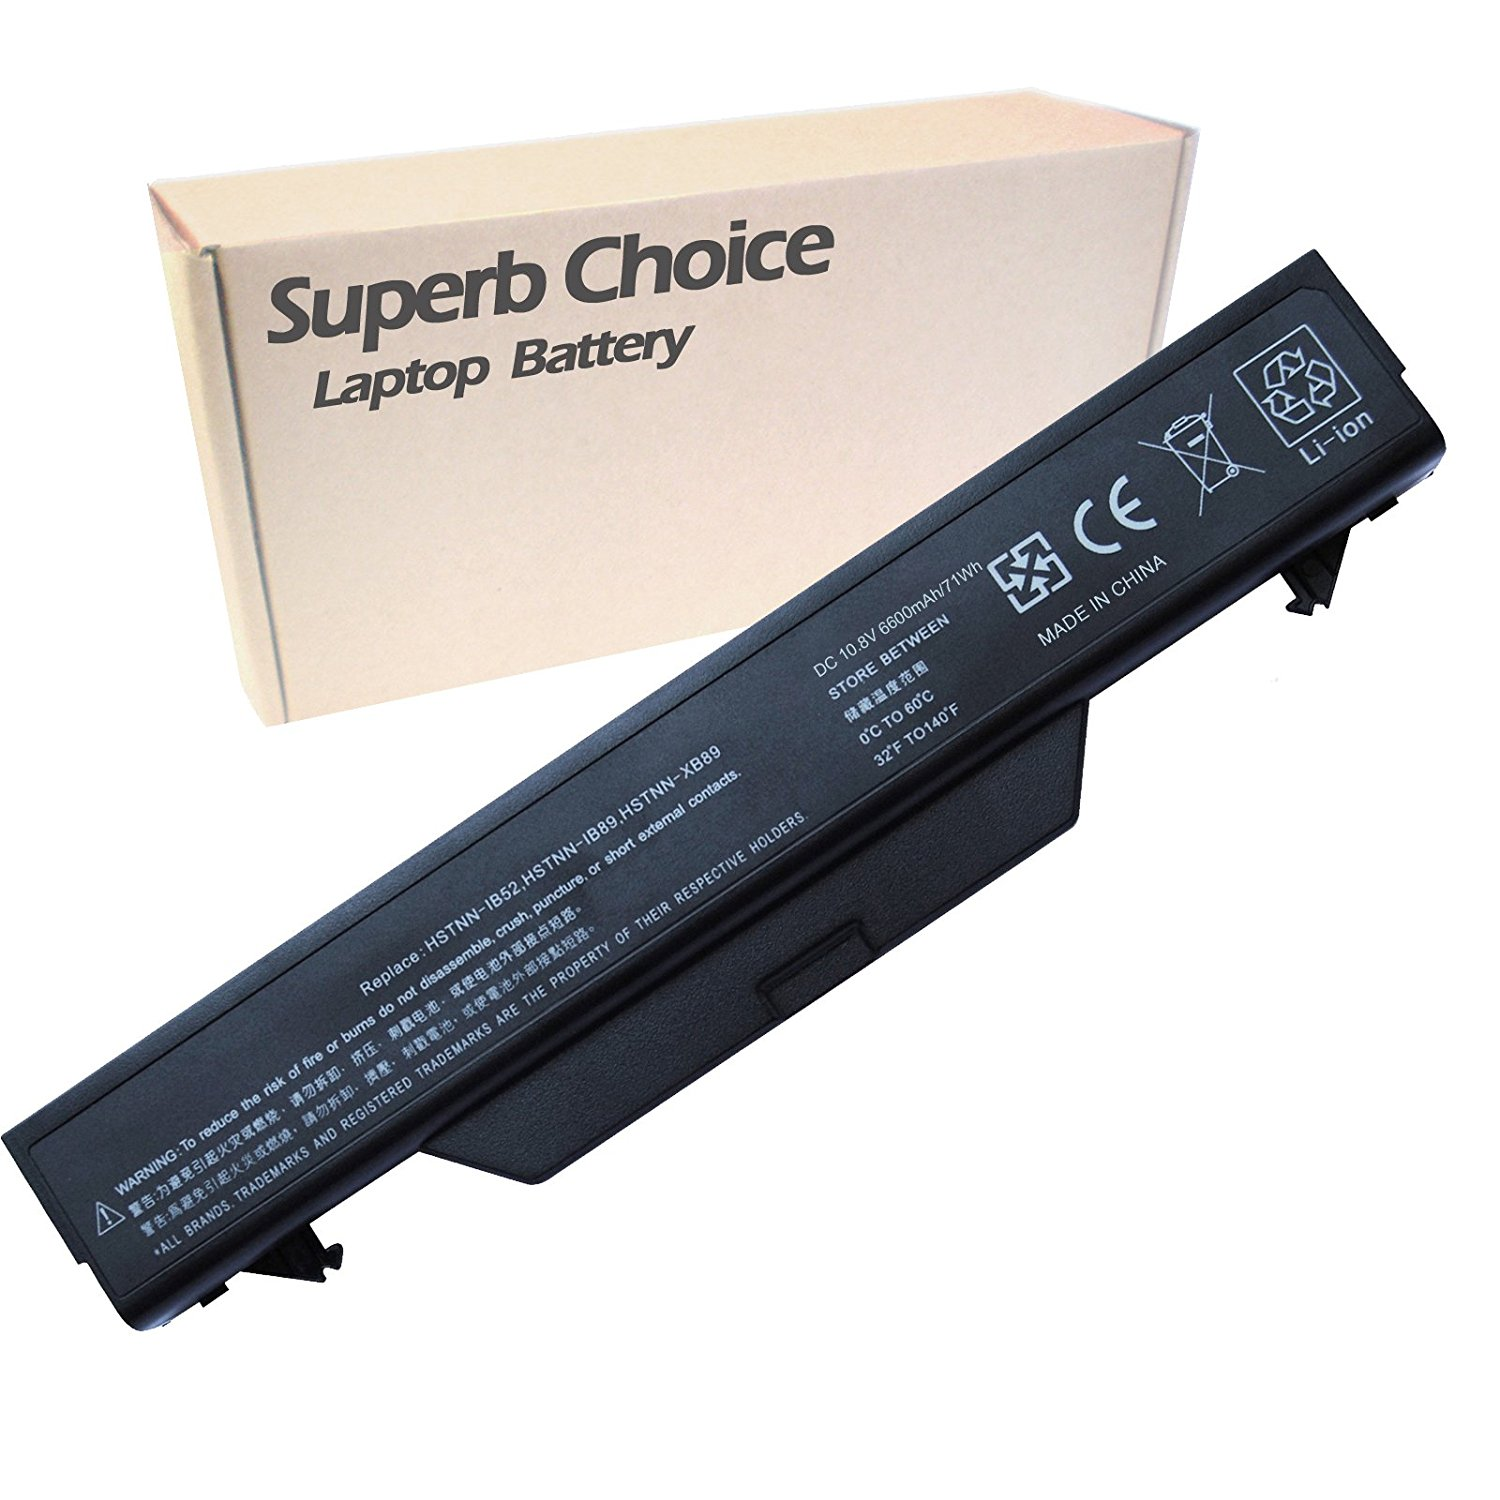 HP HSTNN-IB88 Laptop Battery - Premium Superb Choice® 9-cell Li-ion Battery